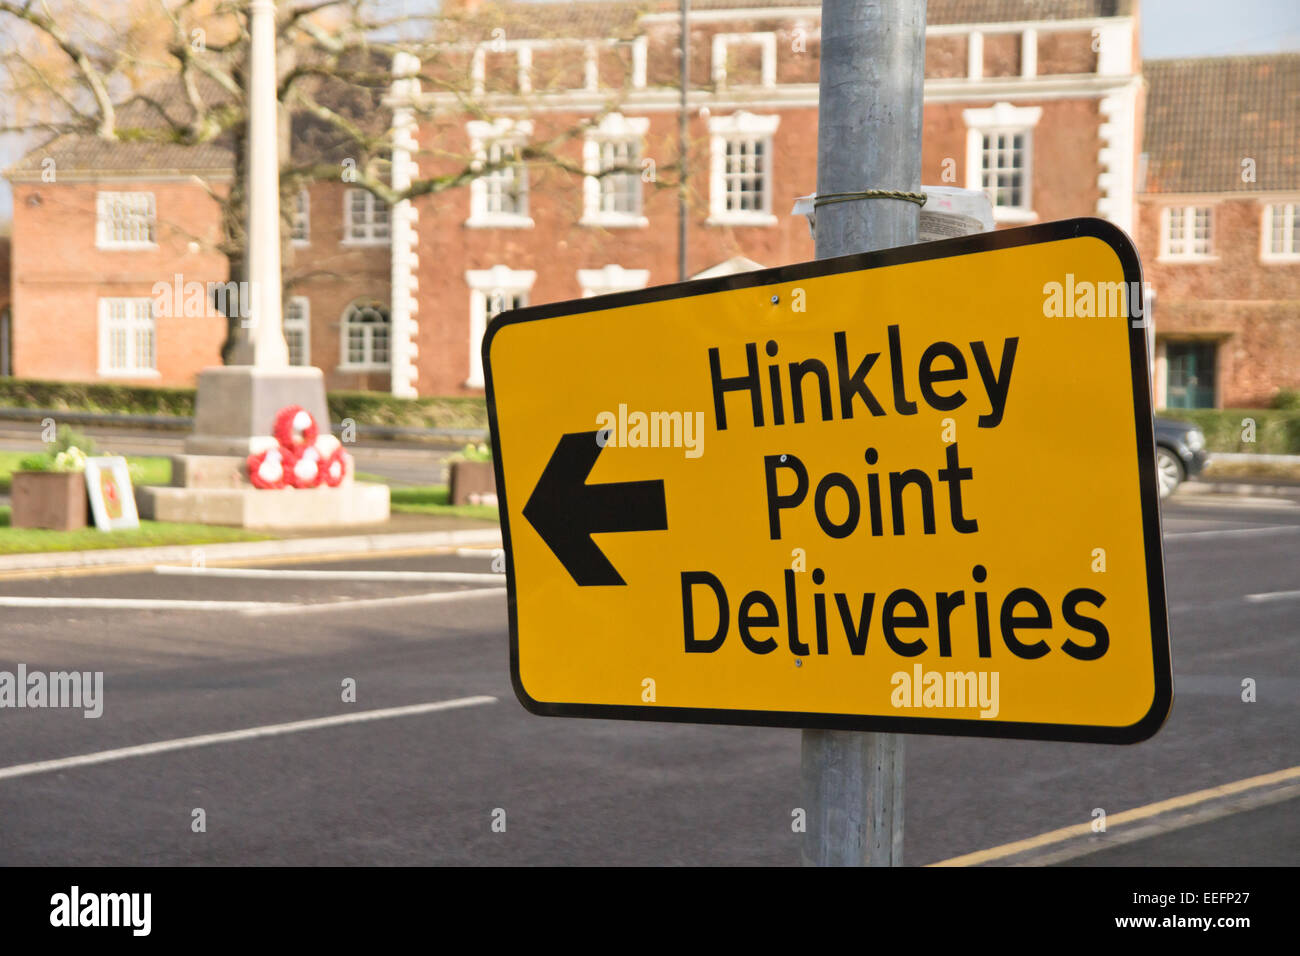 Cannington a village in Somerset near to the Site of Hinkley Point C nuclear Power Station. Hinkley point deliveries - Stock Image